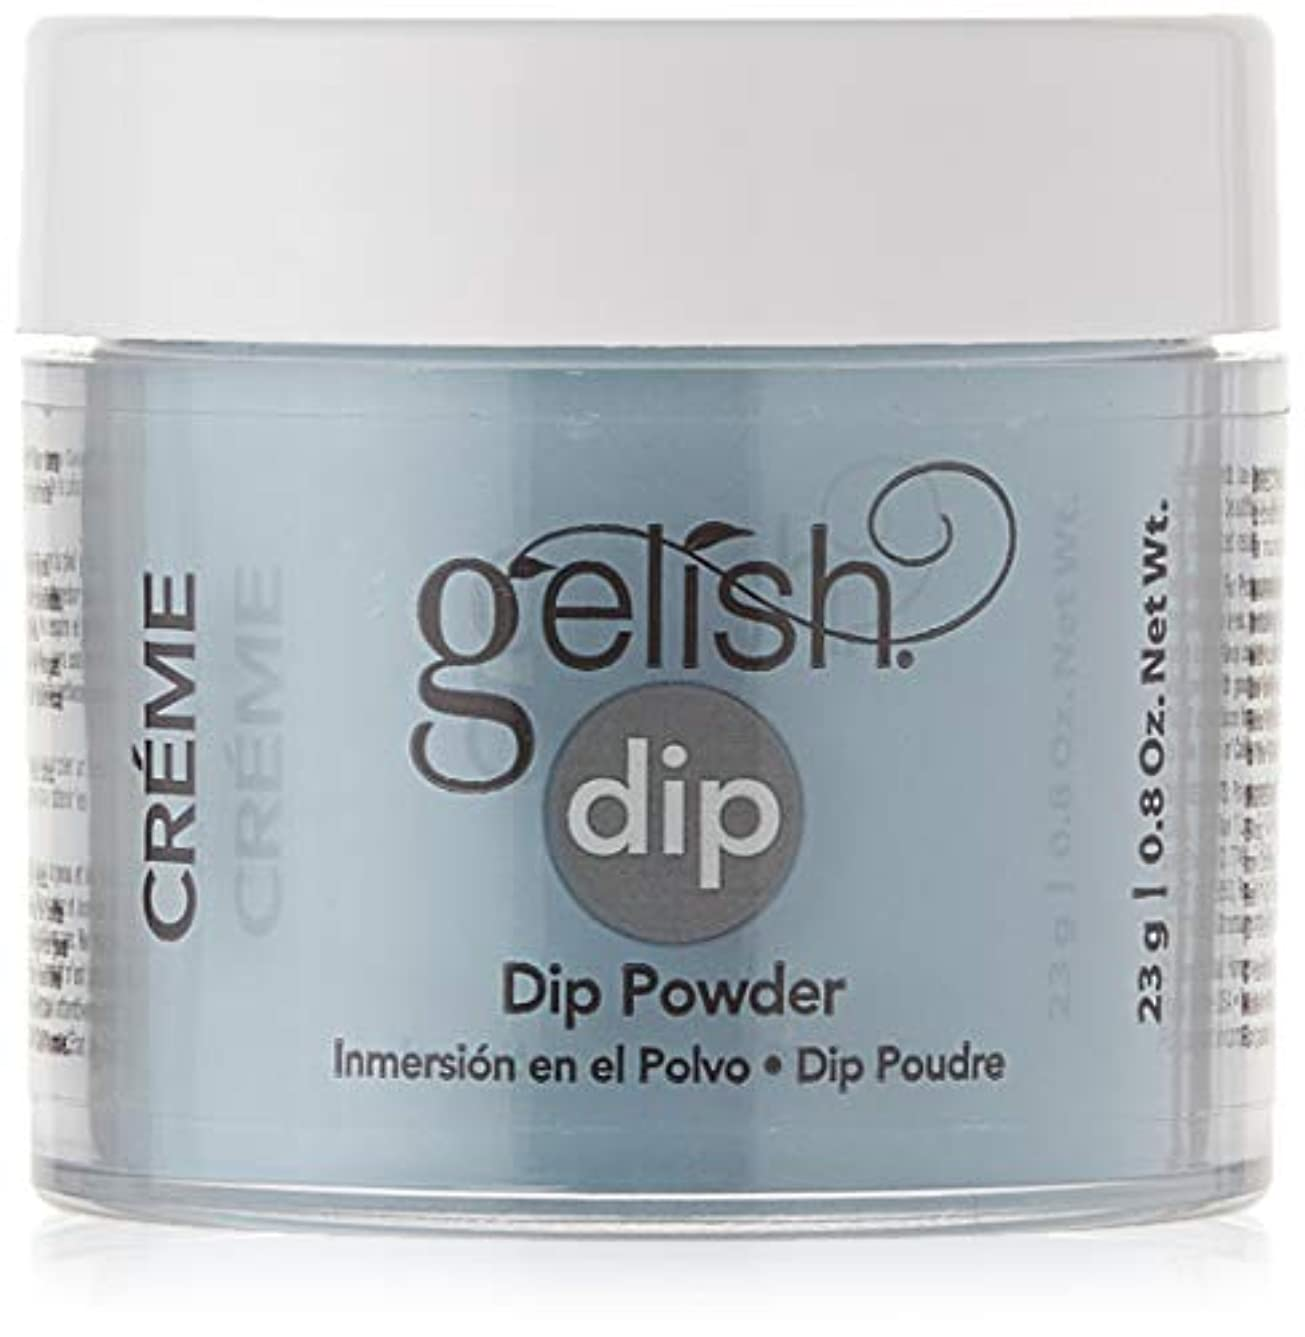 キノコカップル土砂降りHarmony Gelish - Acrylic Dip Powder - My Favorite Accessory - 23g / 0.8oz